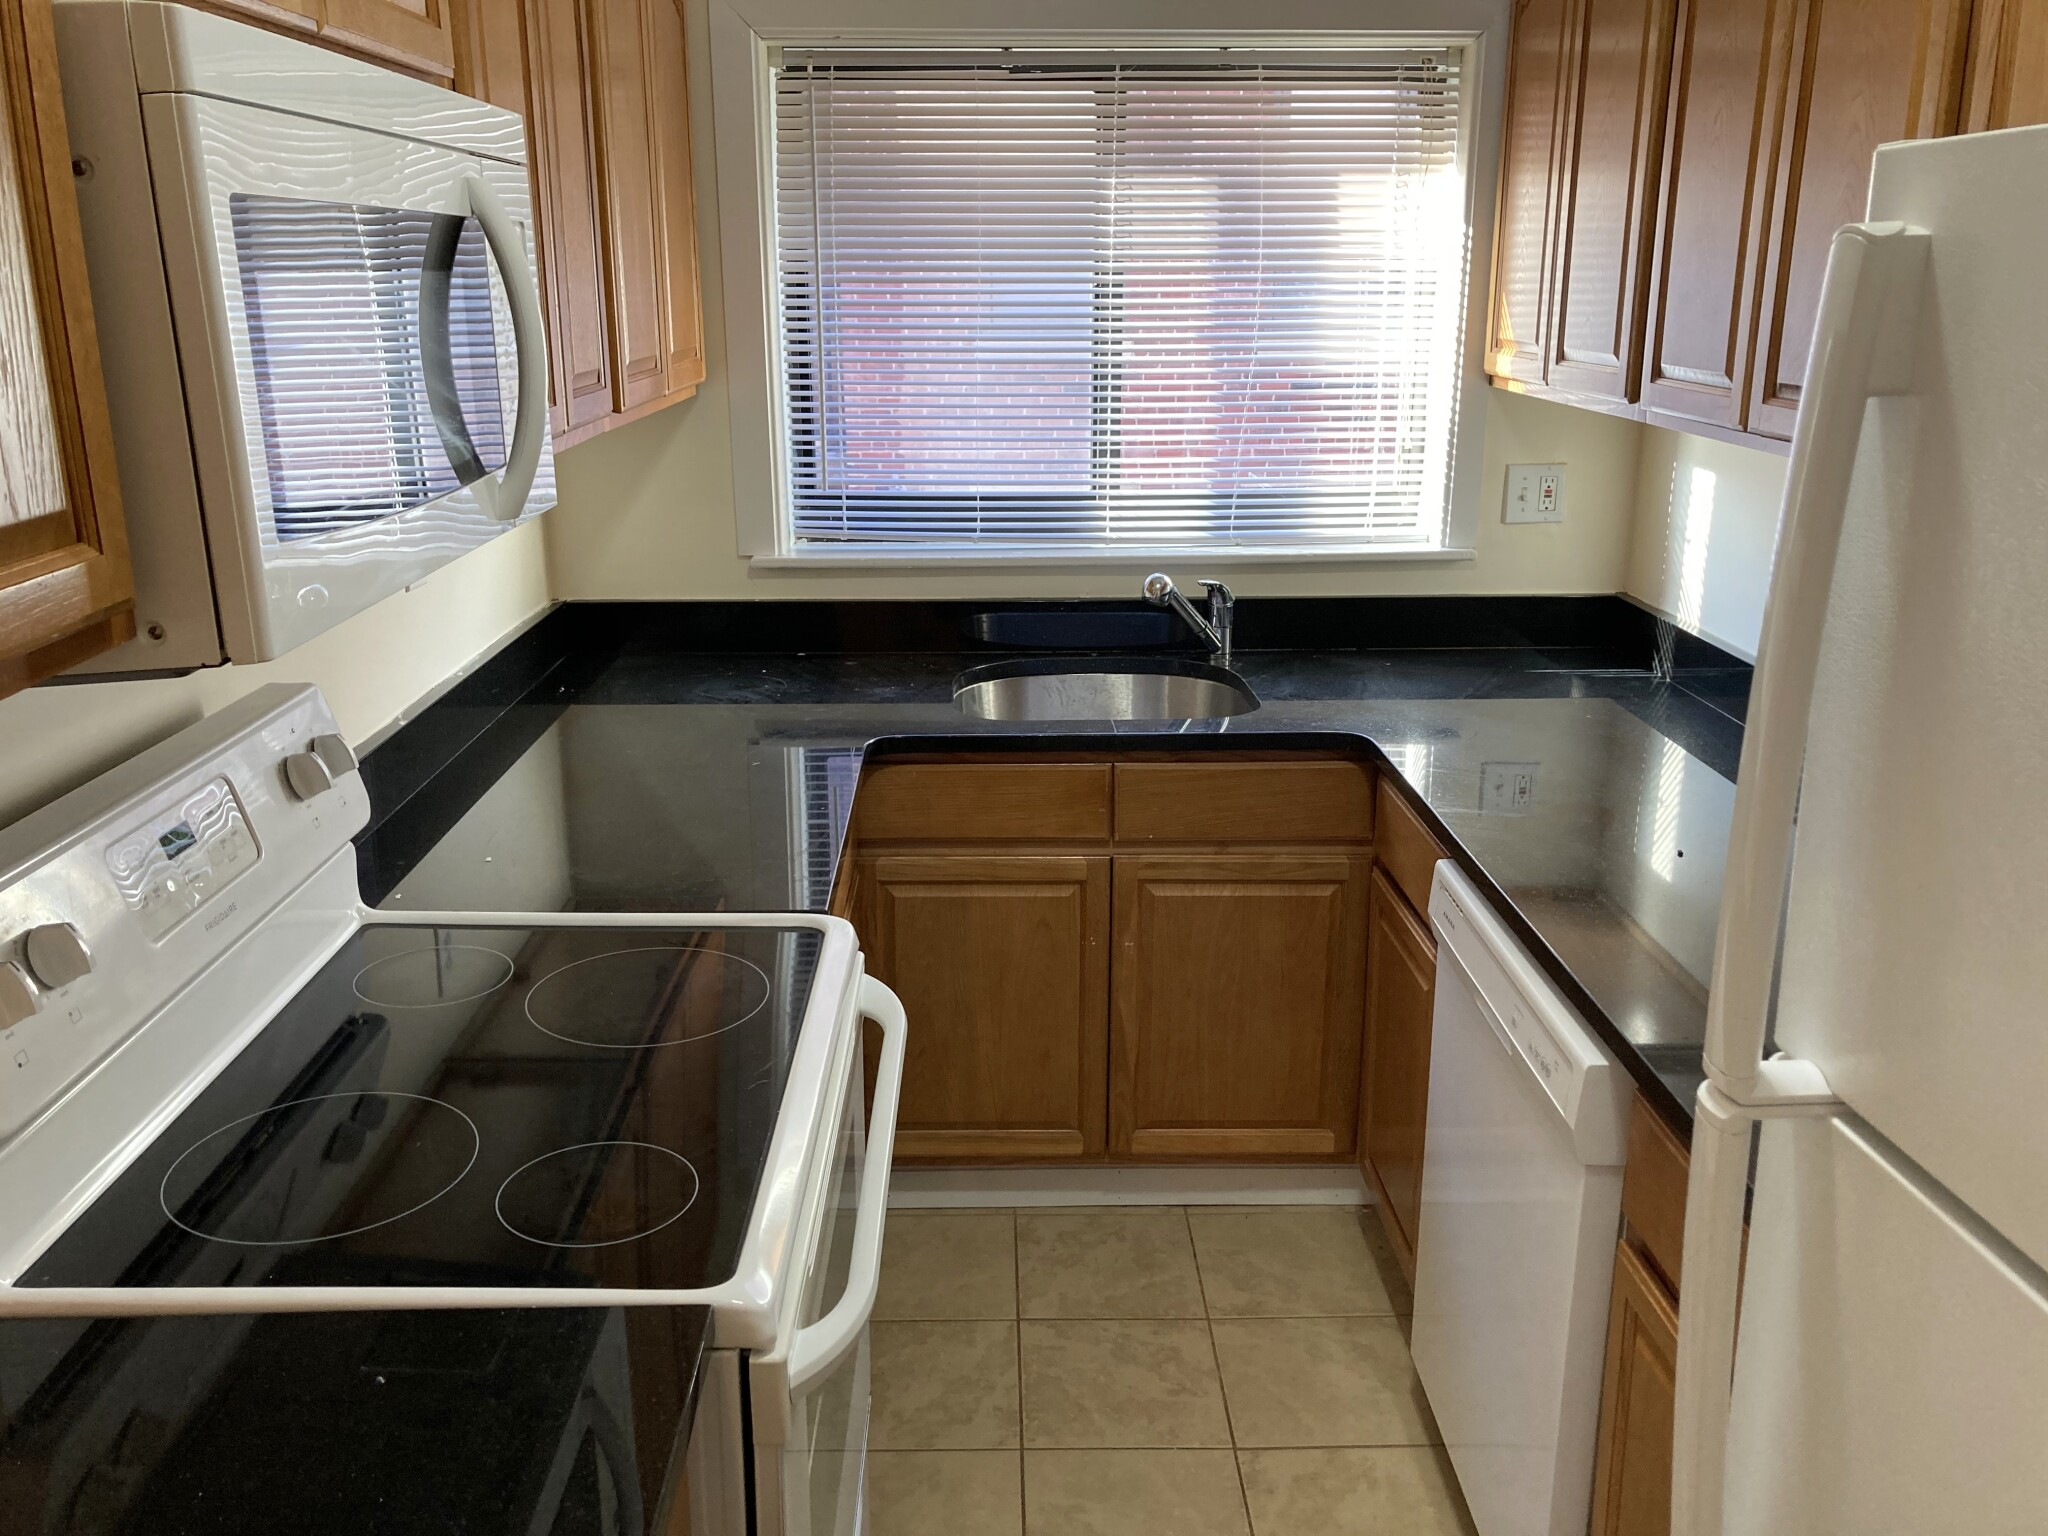 3 Beds, 1 Bath apartment in Brookline for $2,500